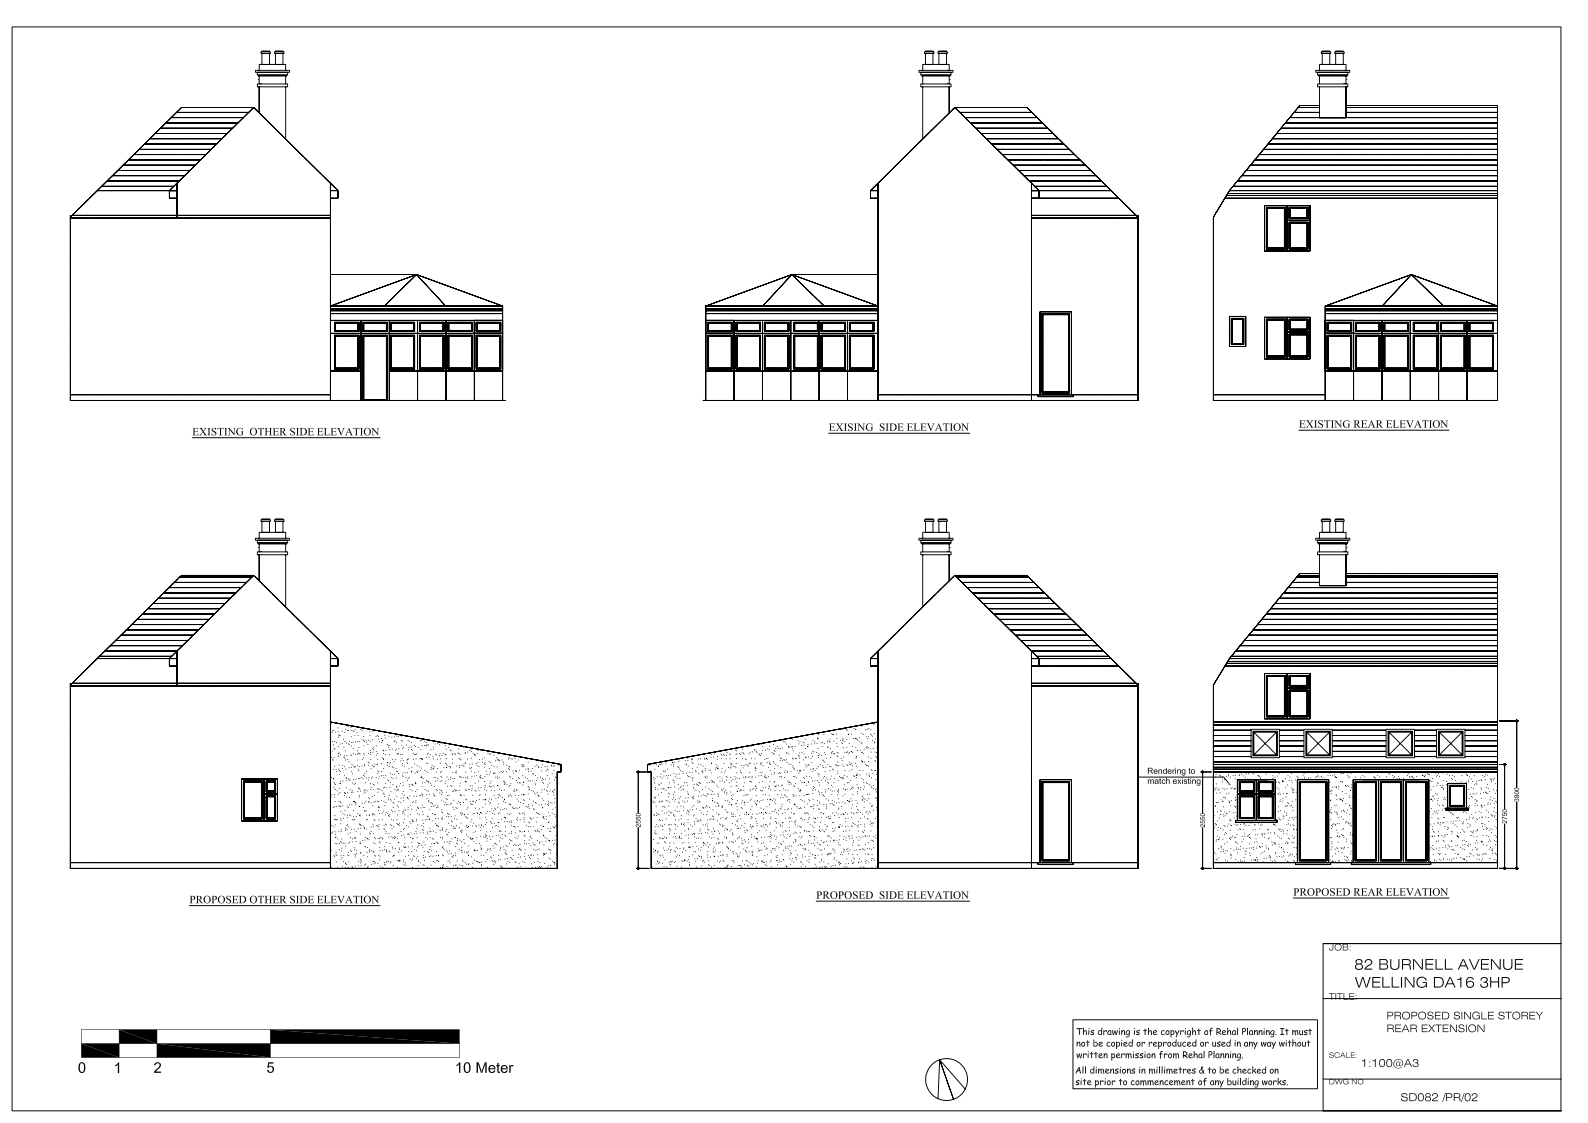 existing-and-proposed-elevation-plans-6-meter-deep-rear-extension